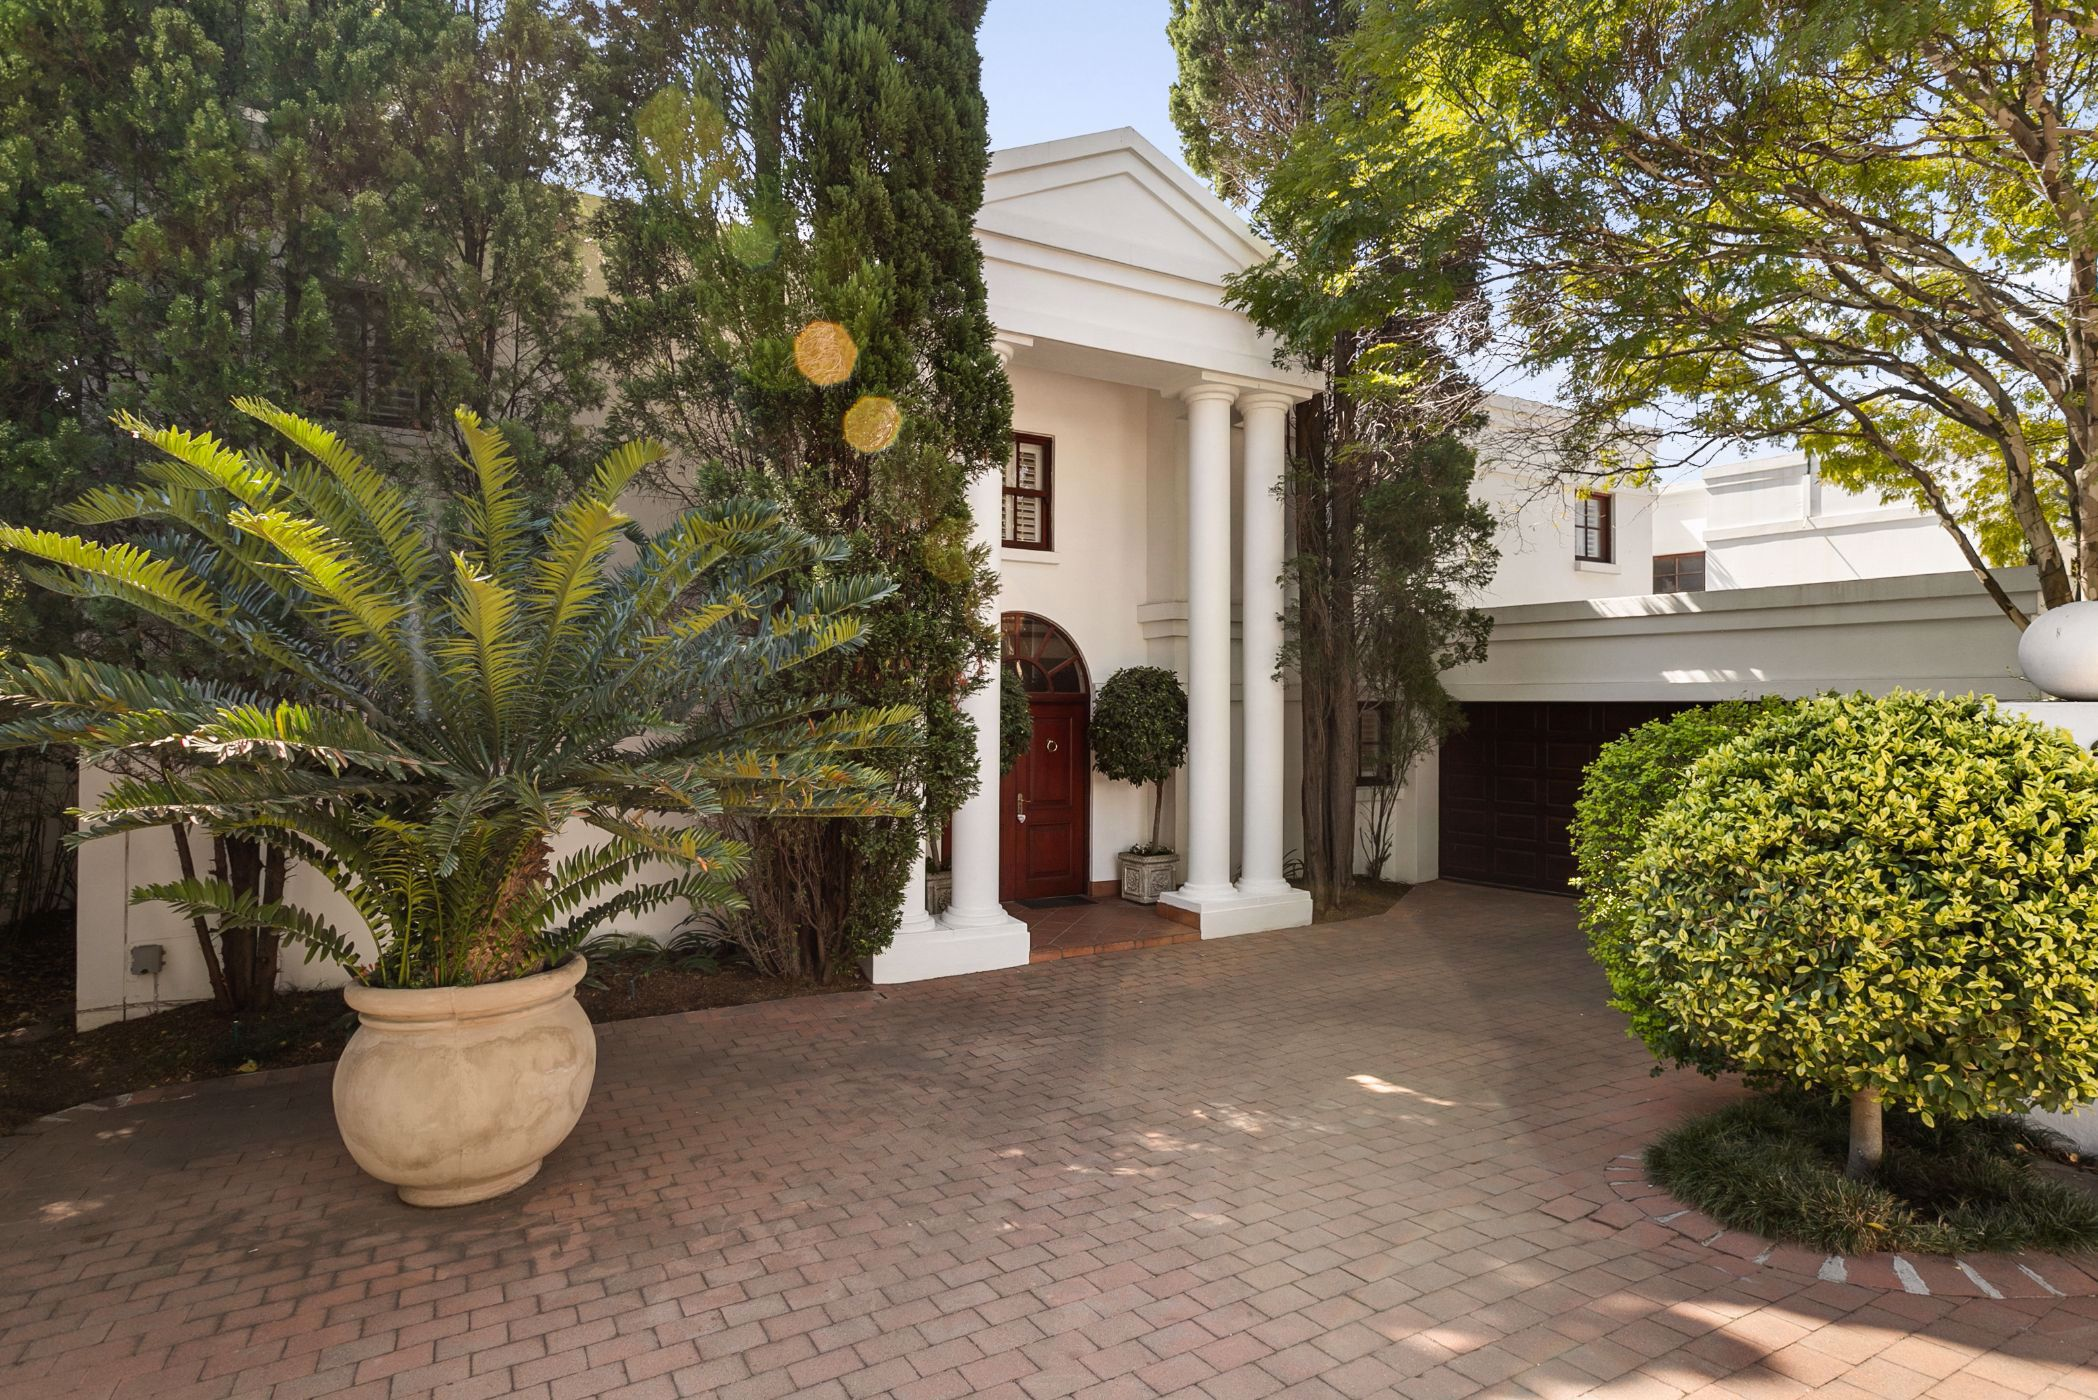 3 bedroom cluster house for sale in Bryanston